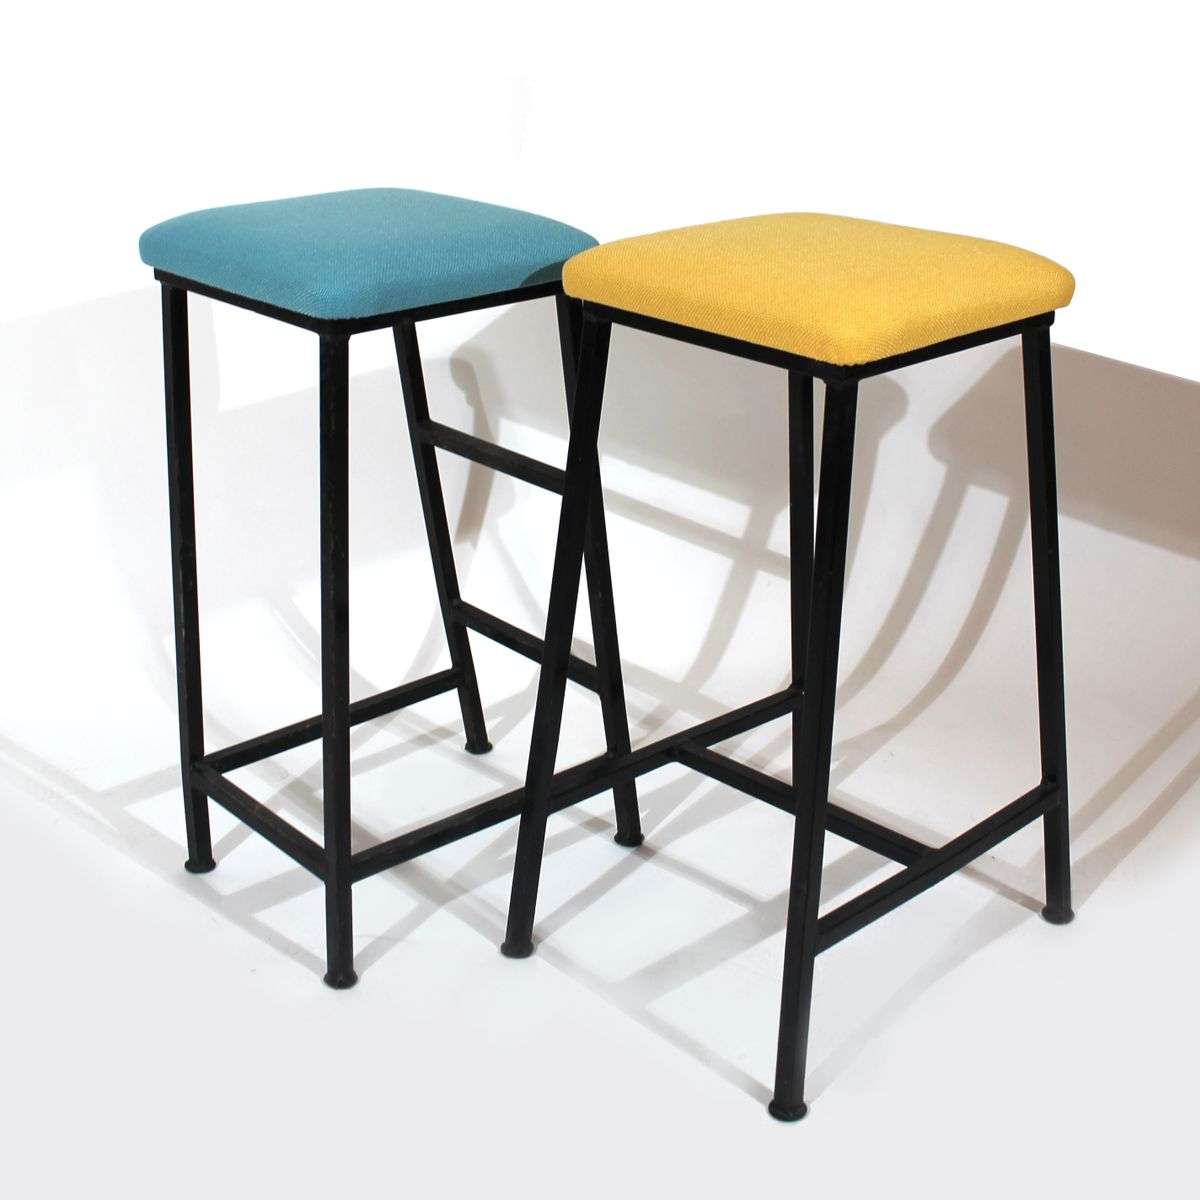 German Vintage Stools 1950s Set Of 2 For Sale At Pamono